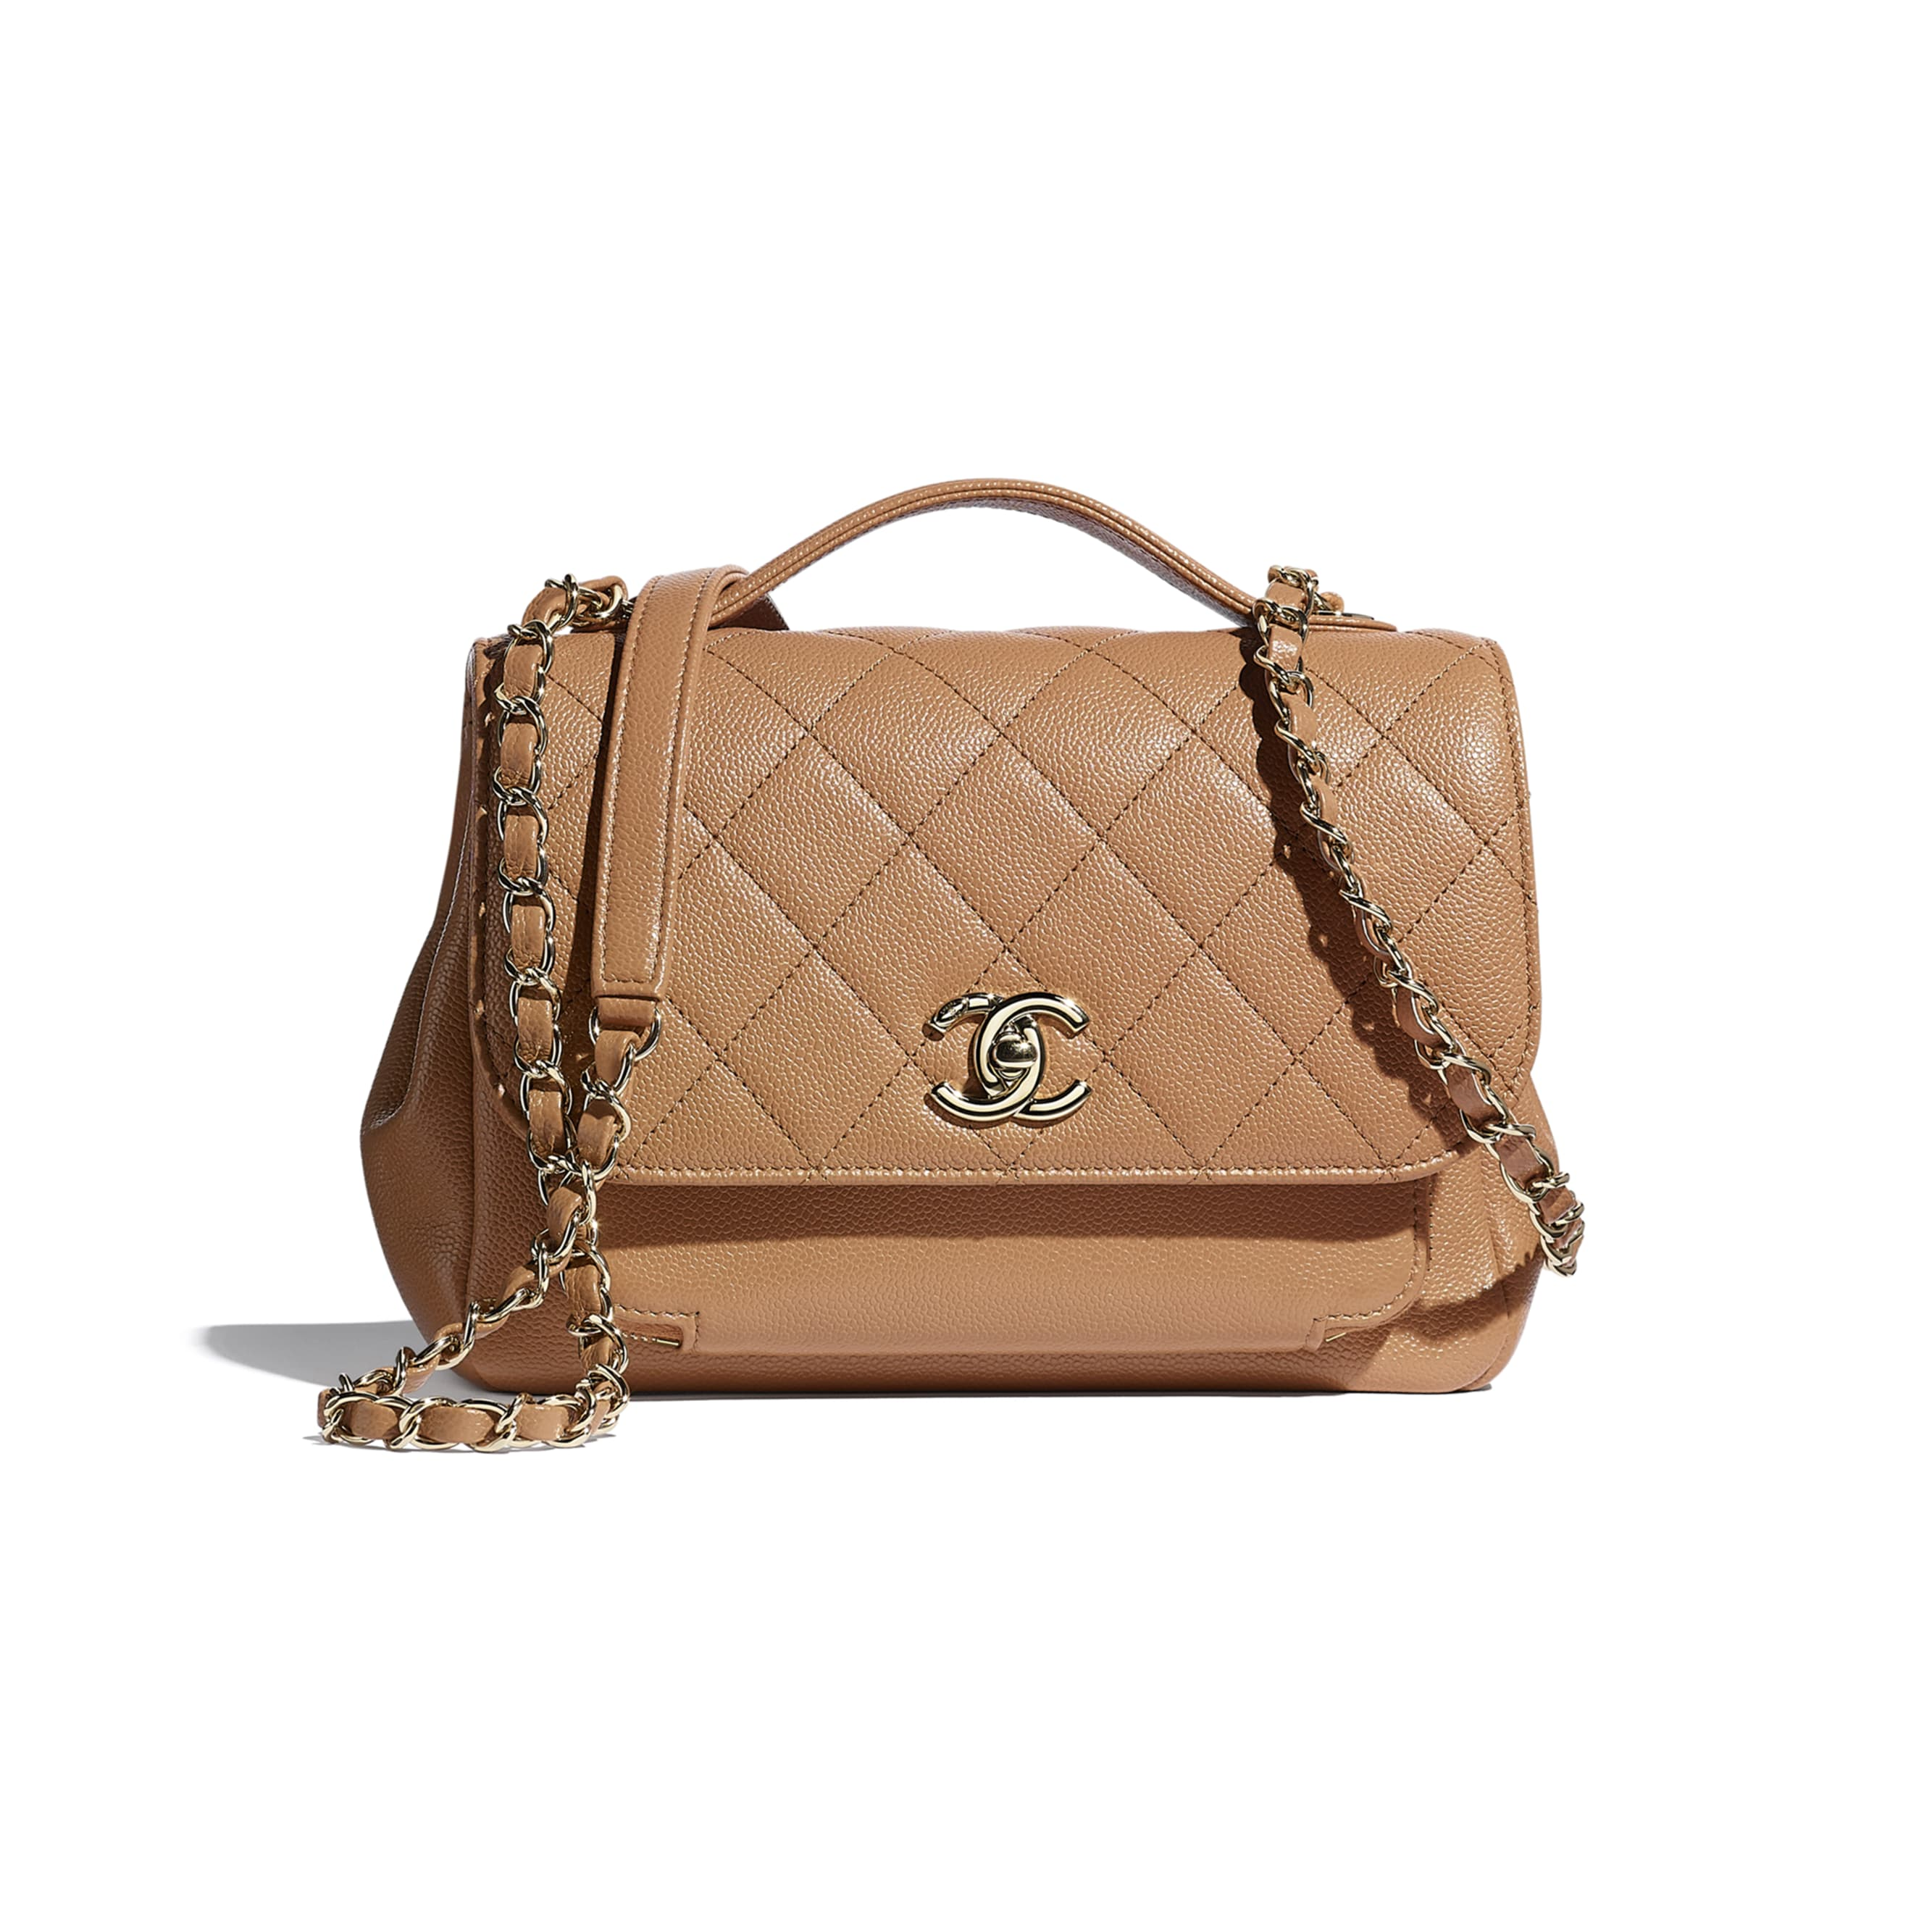 Flap Bag With Top Handle - Brown - Grained Calfskin & Gold-Tone Metal - CHANEL - Default view - see standard sized version